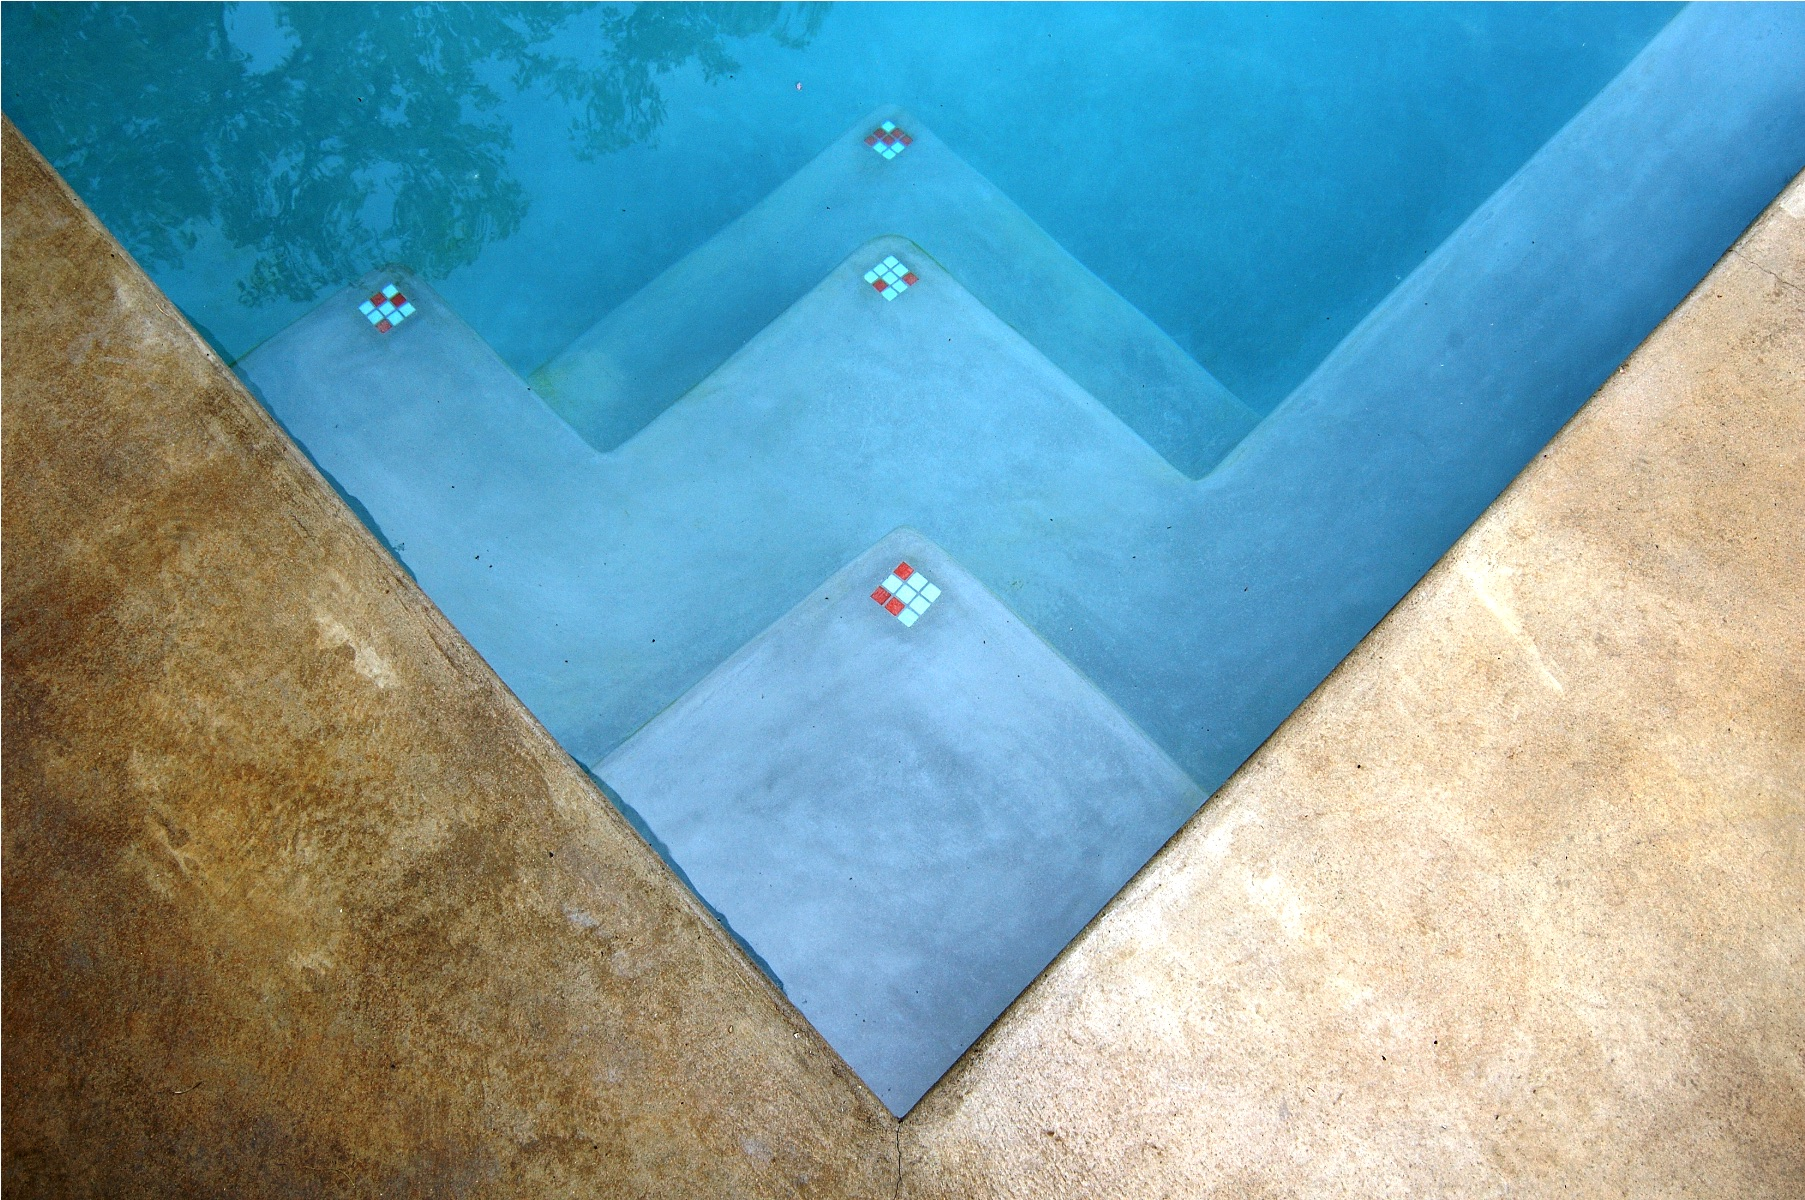 project-humphrey-place--pool-tiles-1600x1200.jpg